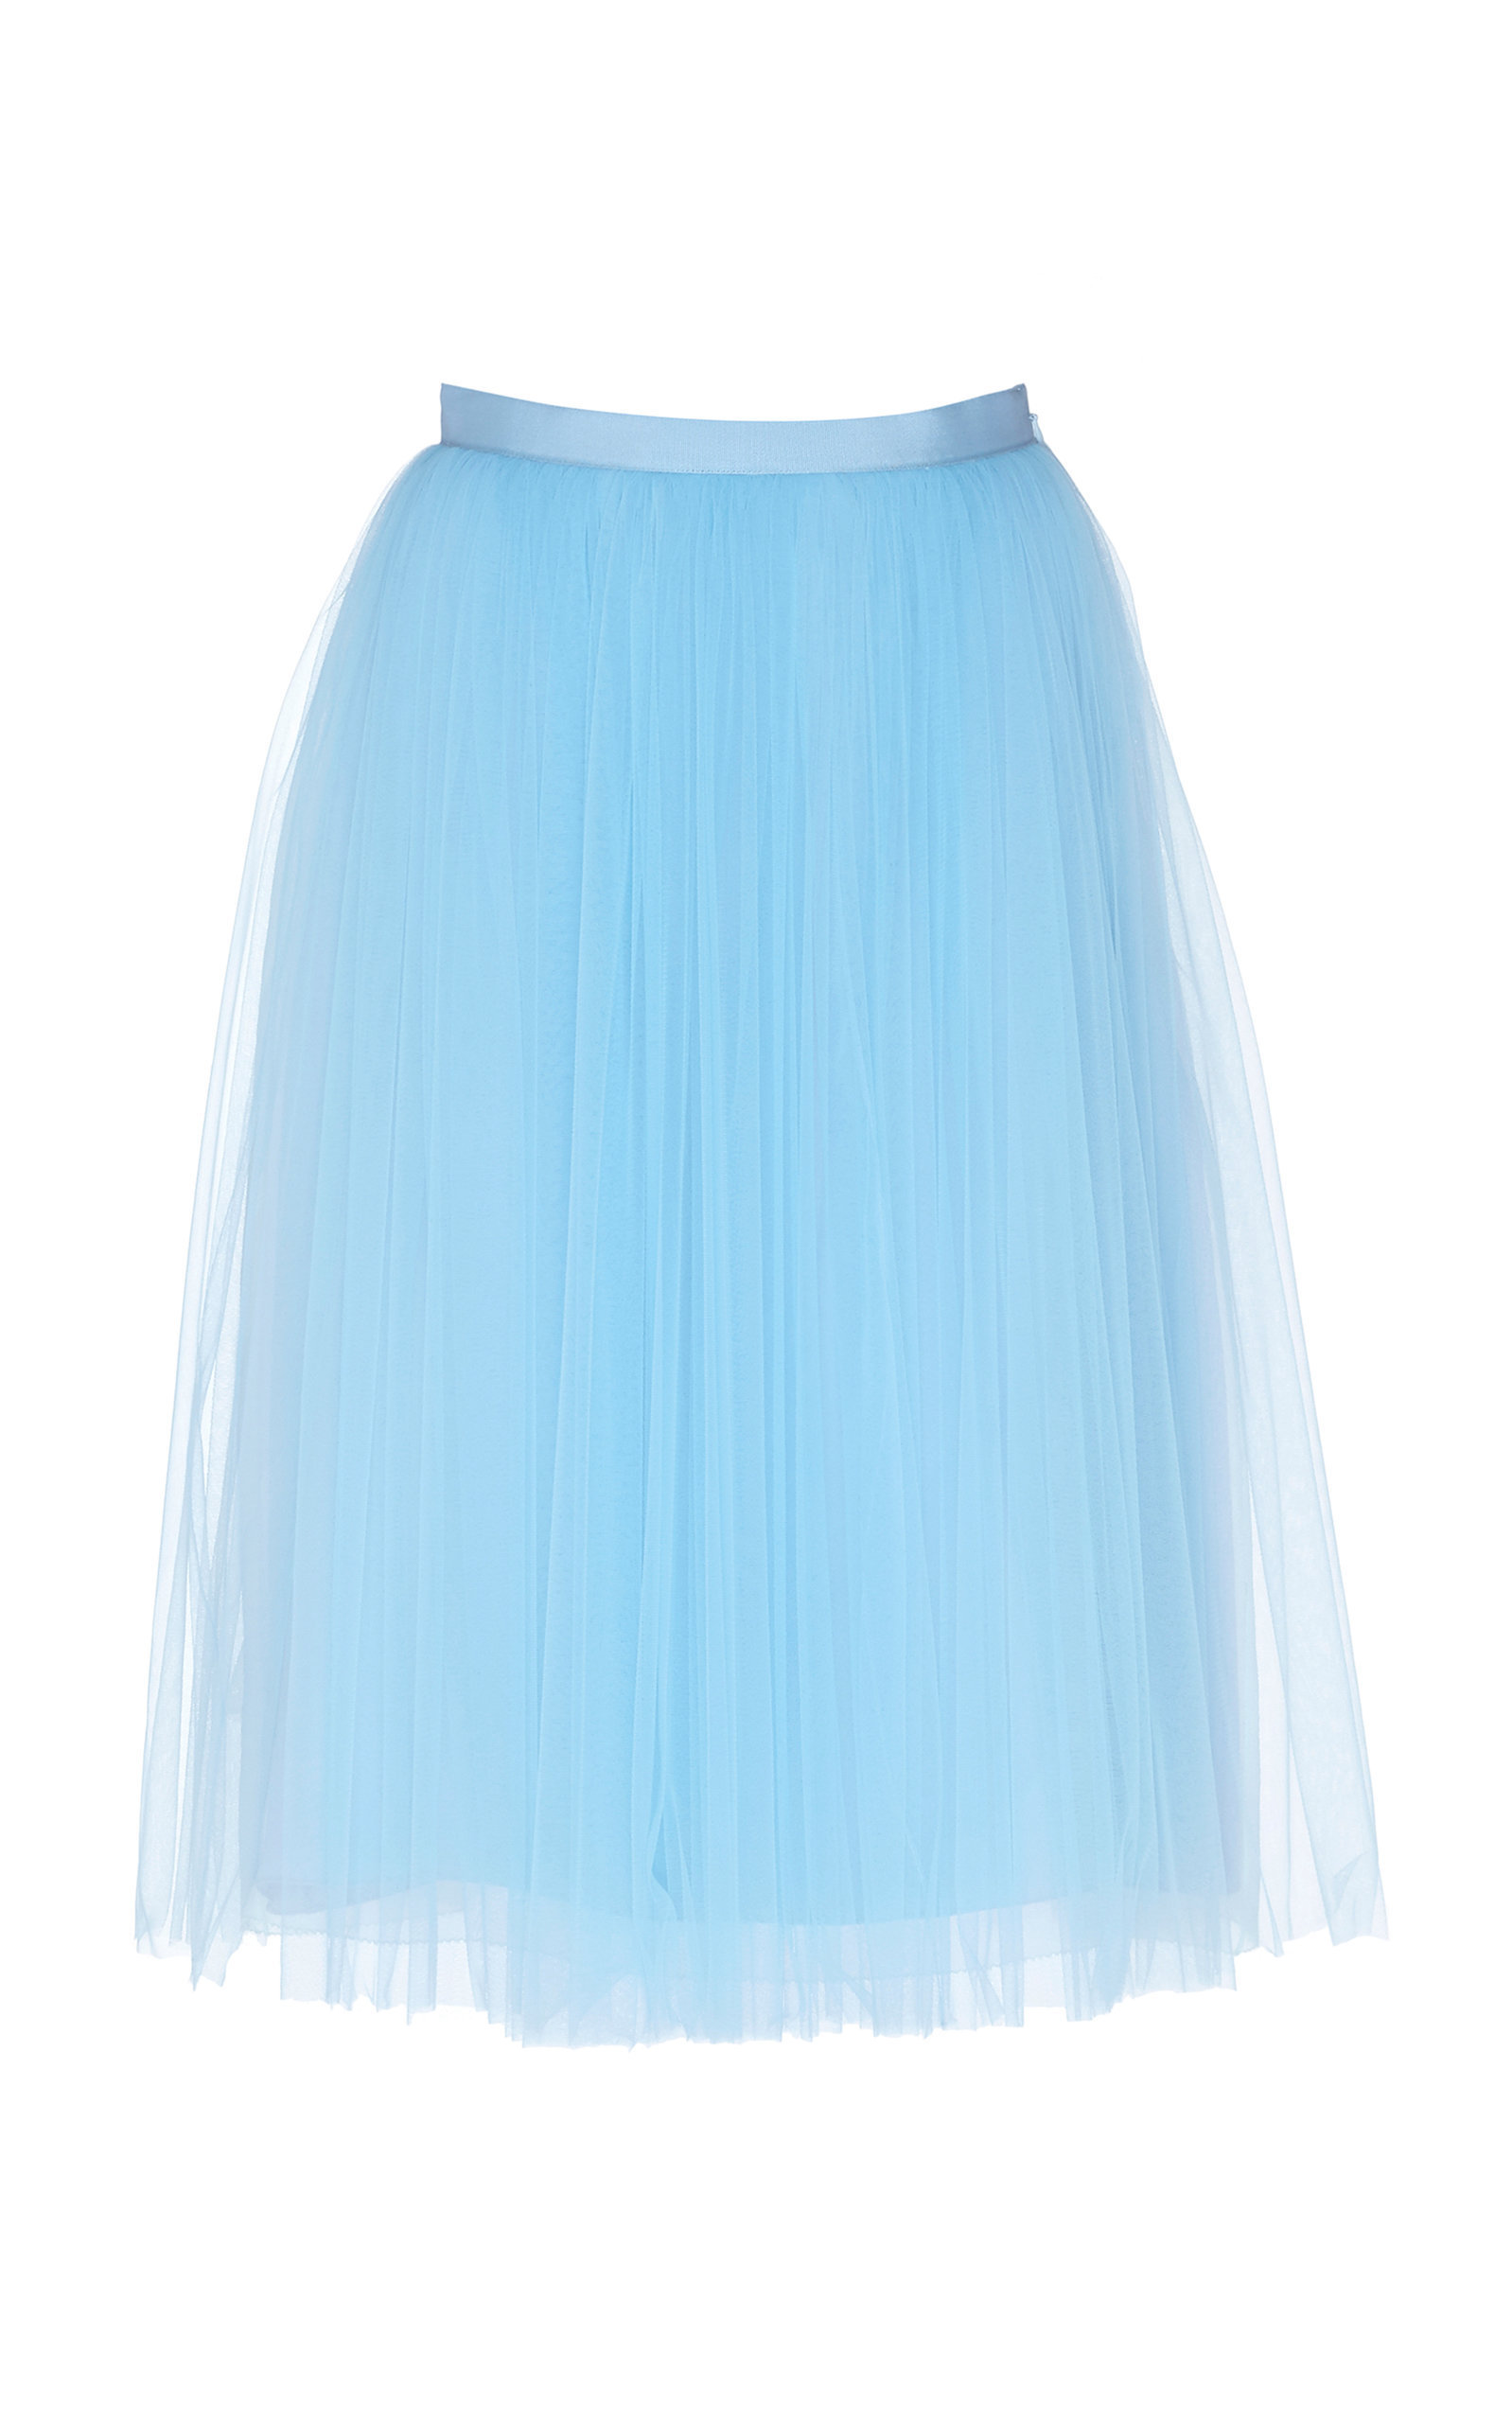 aadec74351 Delpozo Layered A-Line Tulle Skirt In Blue   ModeSens